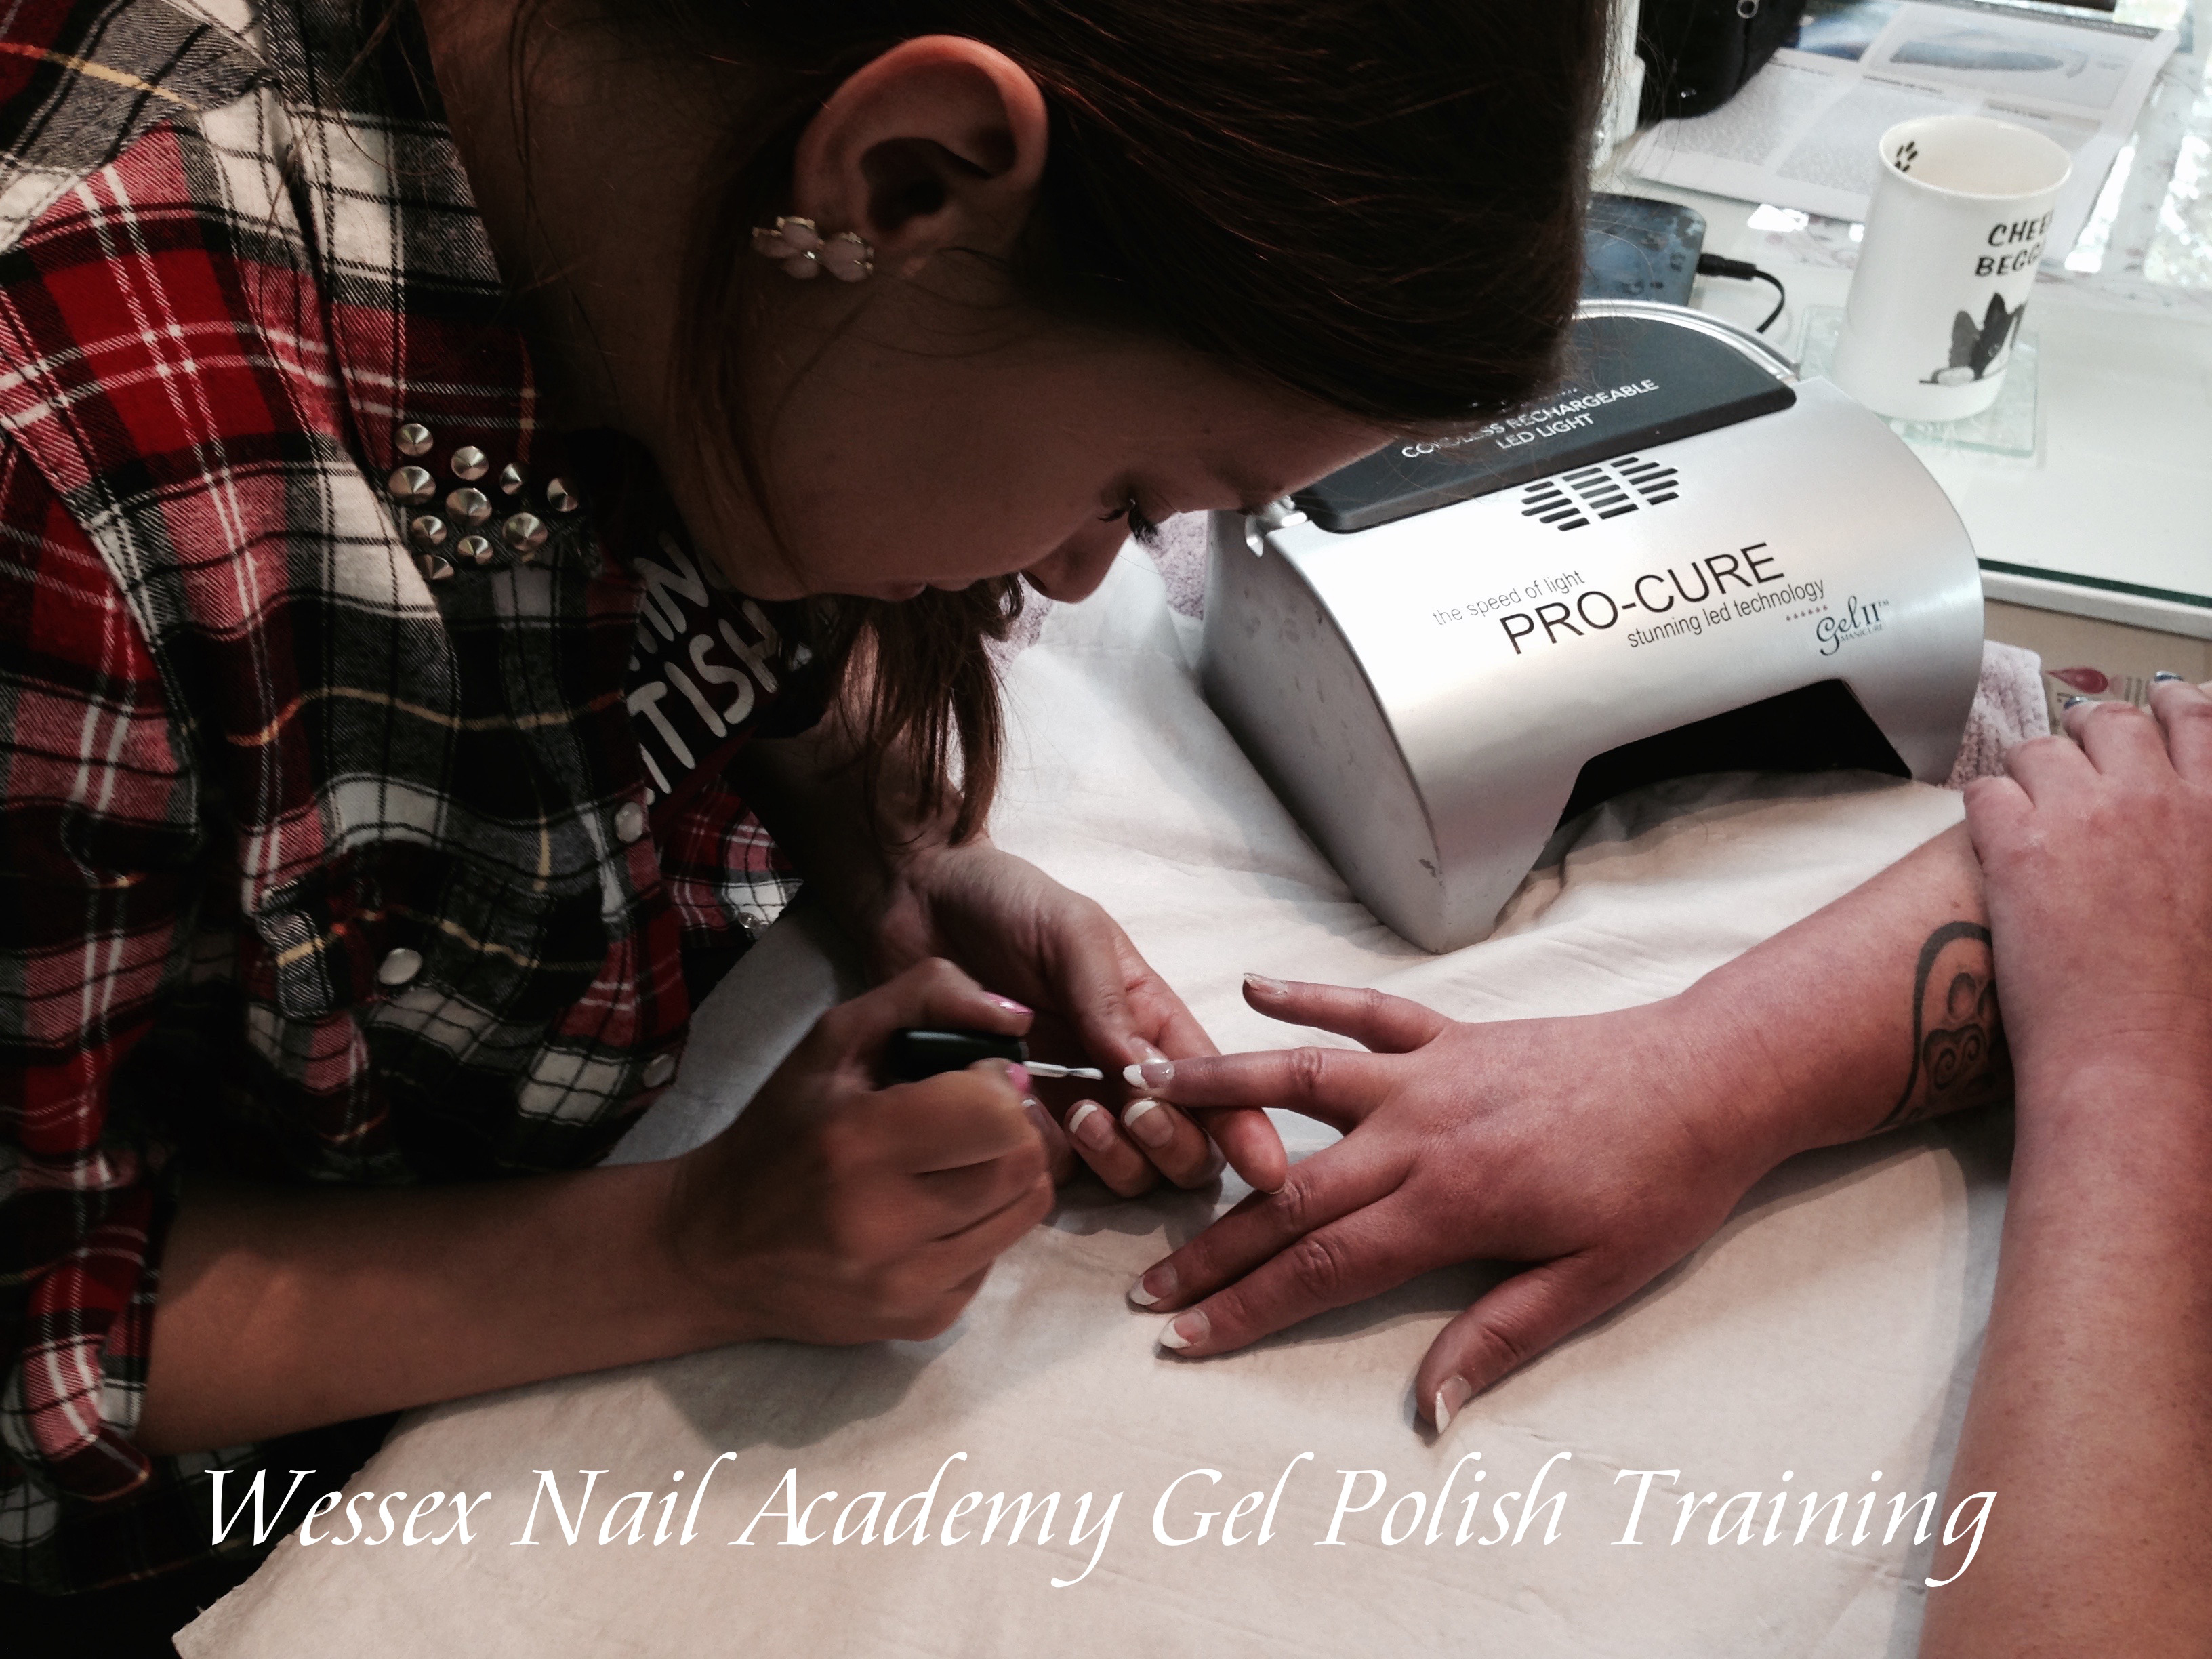 Gel Polish Beginners Manicure and Pedicure Nail Technicians Course, Nail extension training, nail training course, Wessex Nail Academy Okeford Fitzpaine, Dorset